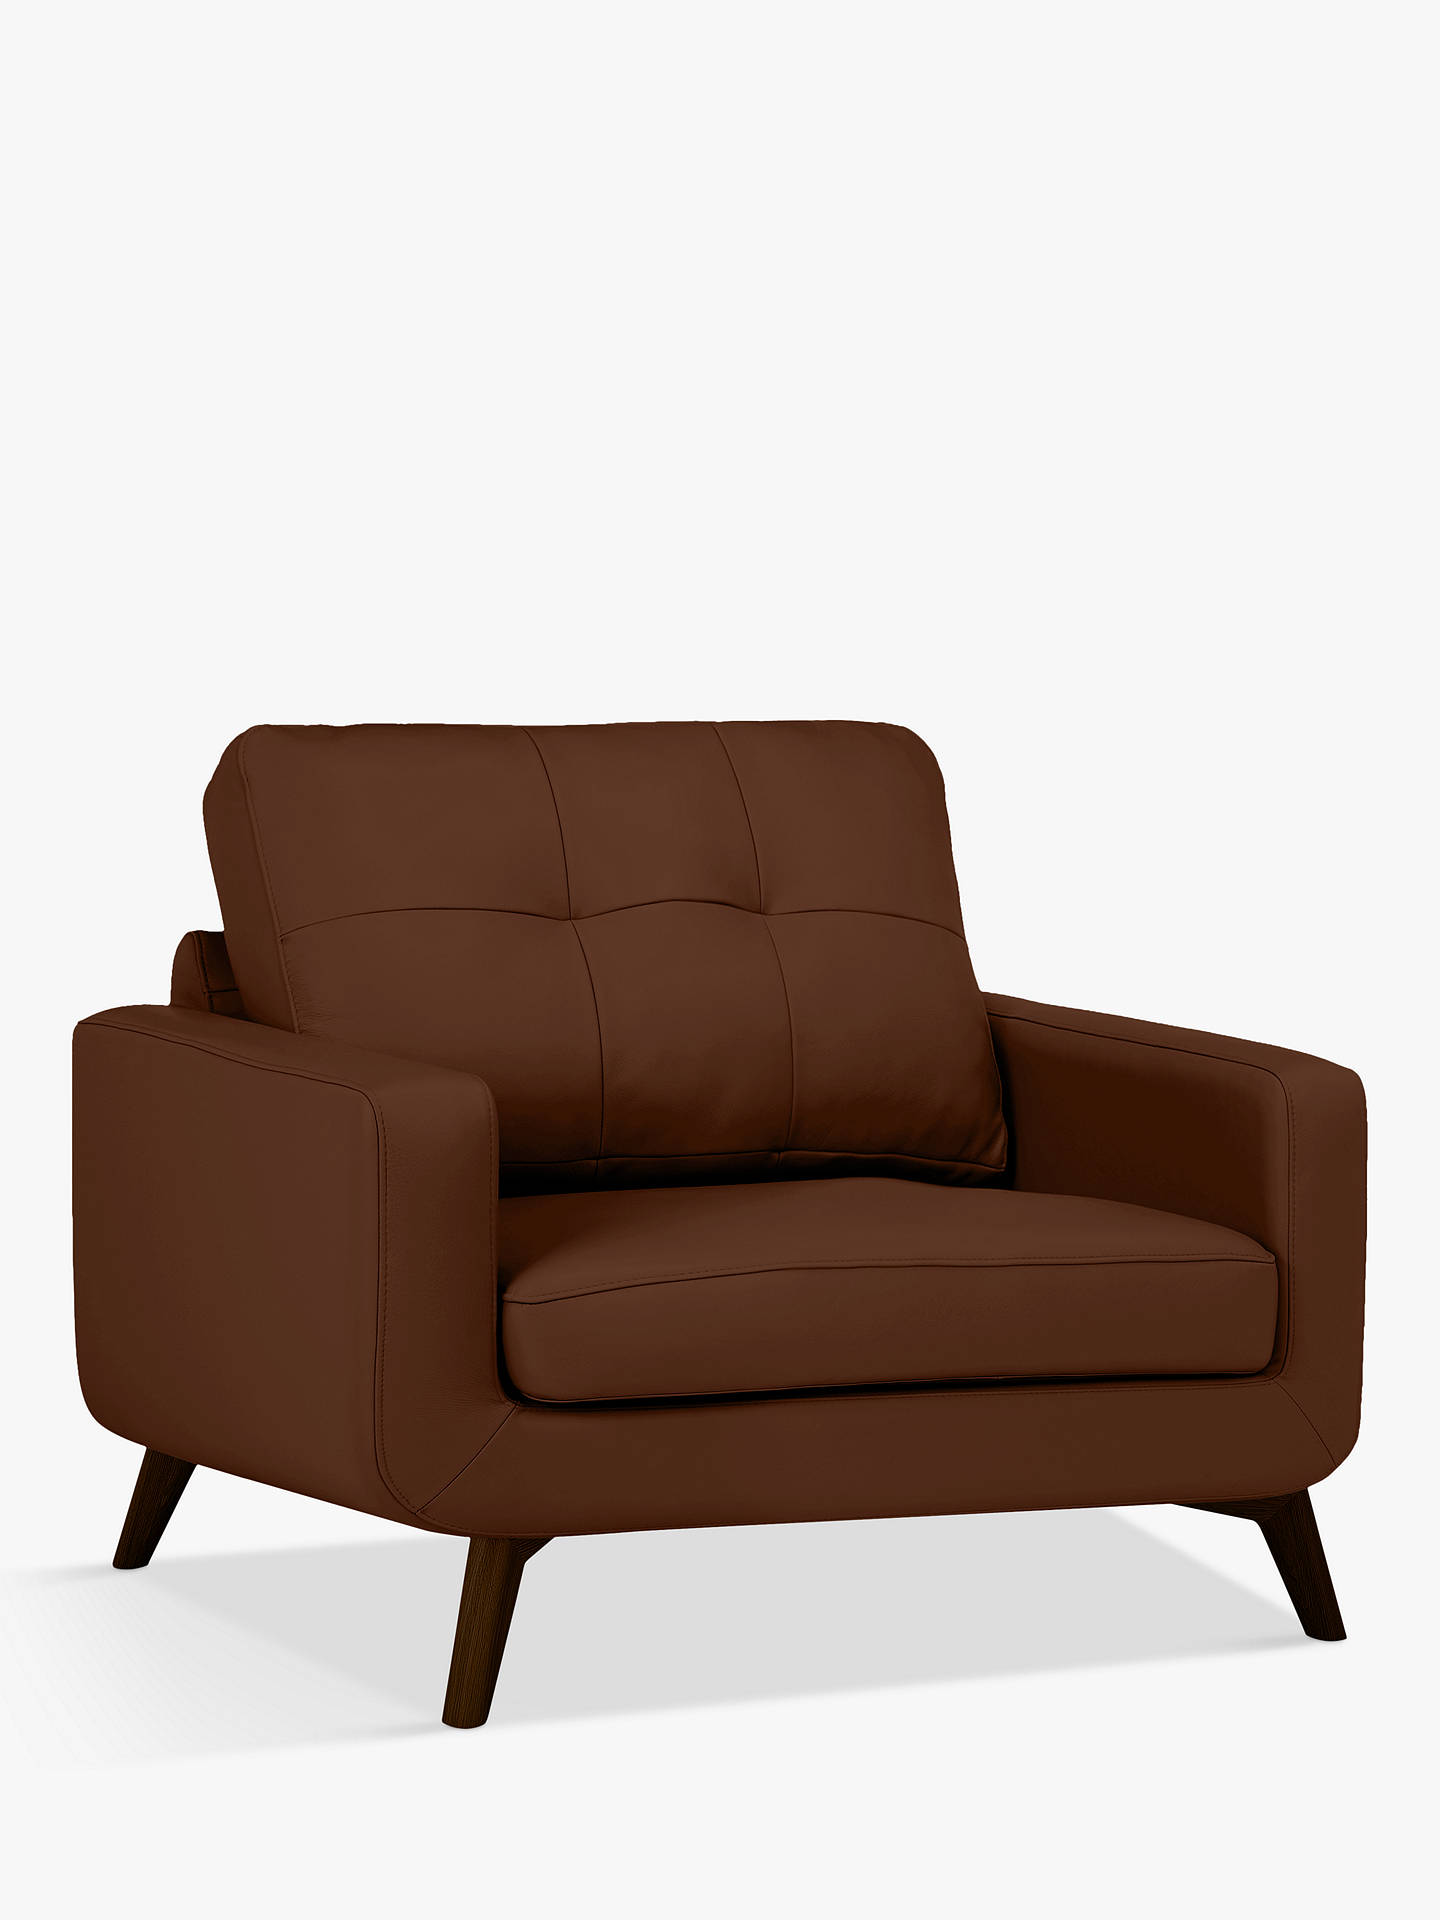 Buy John Lewis & Partners Barbican Leather Snuggler, Dark Leg, Contempo Castanga Online at johnlewis.com